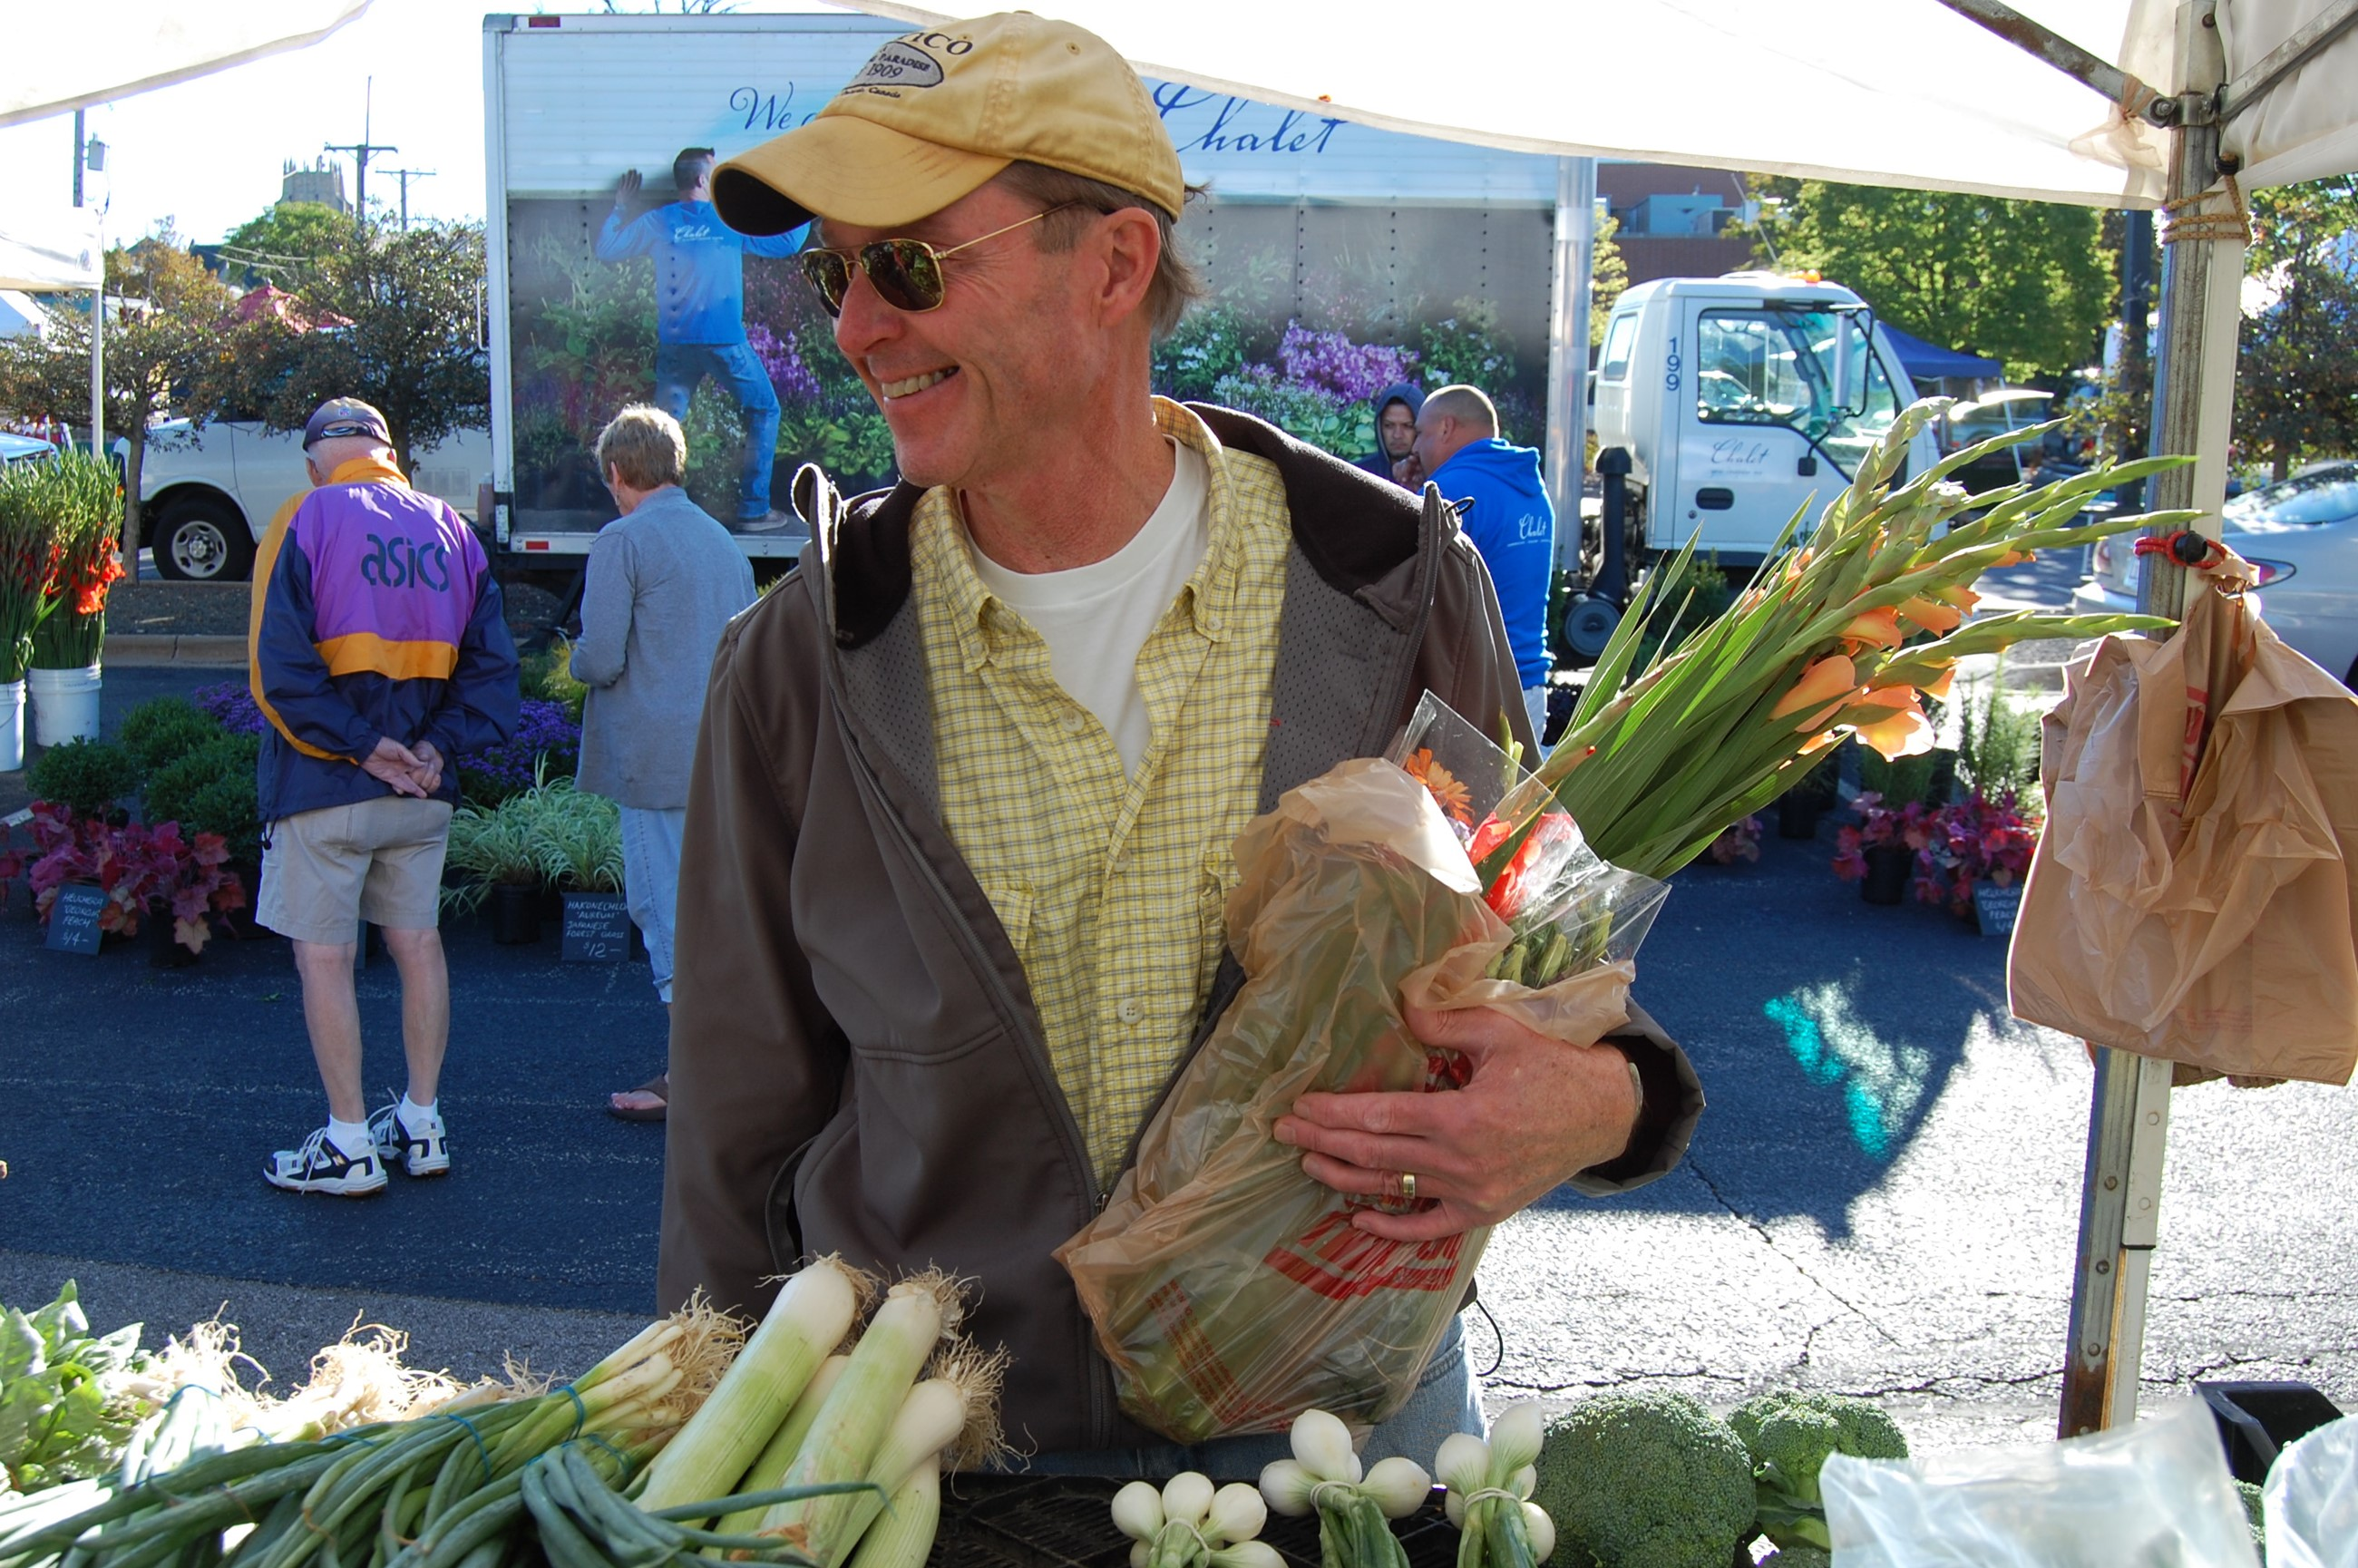 Man in sunglasses holding purchased produce